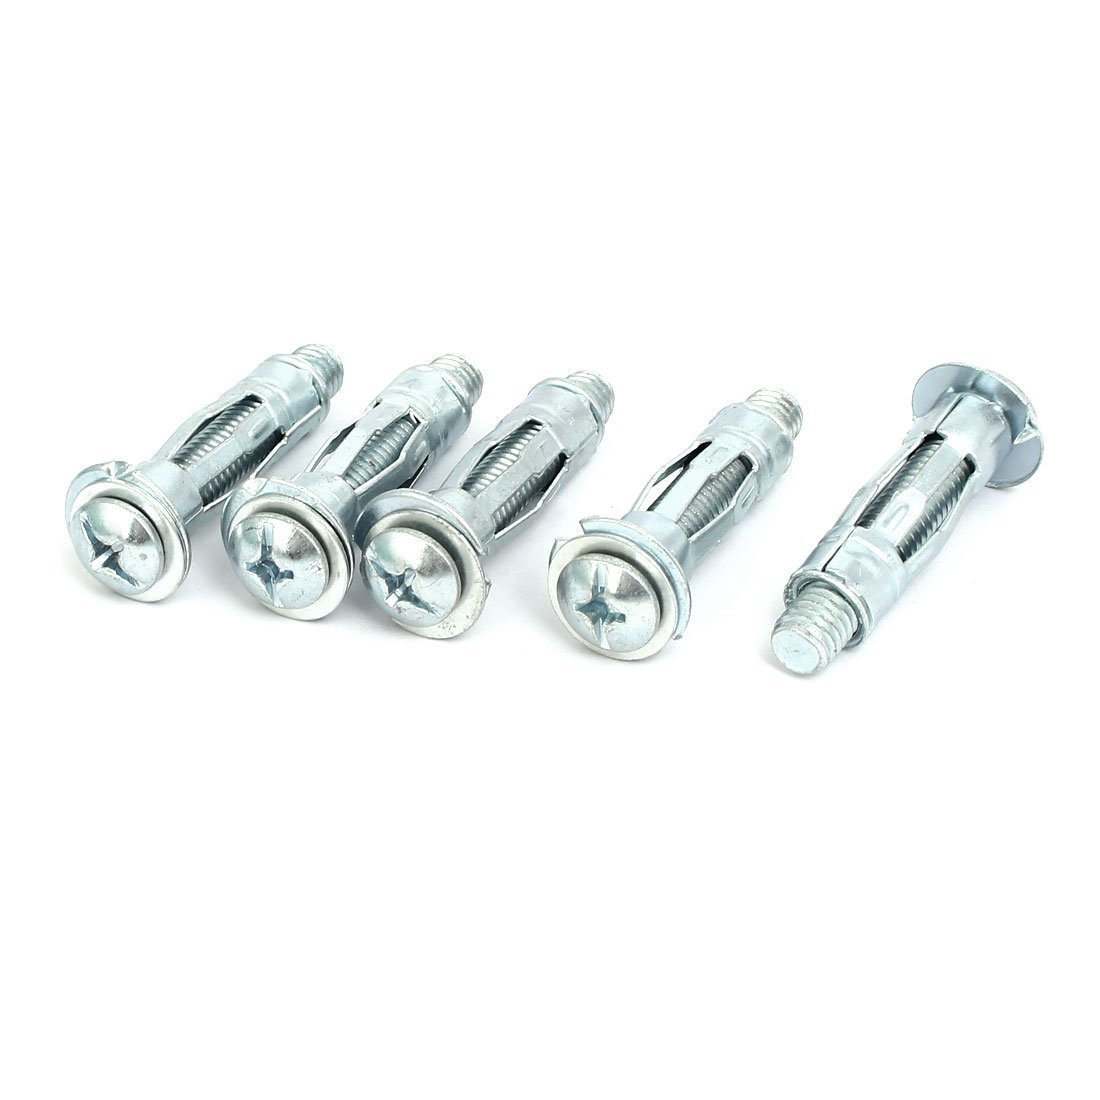 Portal Cool M8x37mm Expansion Bolt Sleeve Anchor 5pcs for 6mm-13mm Hollow Wall Wide Spread SM-TRADICO-XU-HI-008985